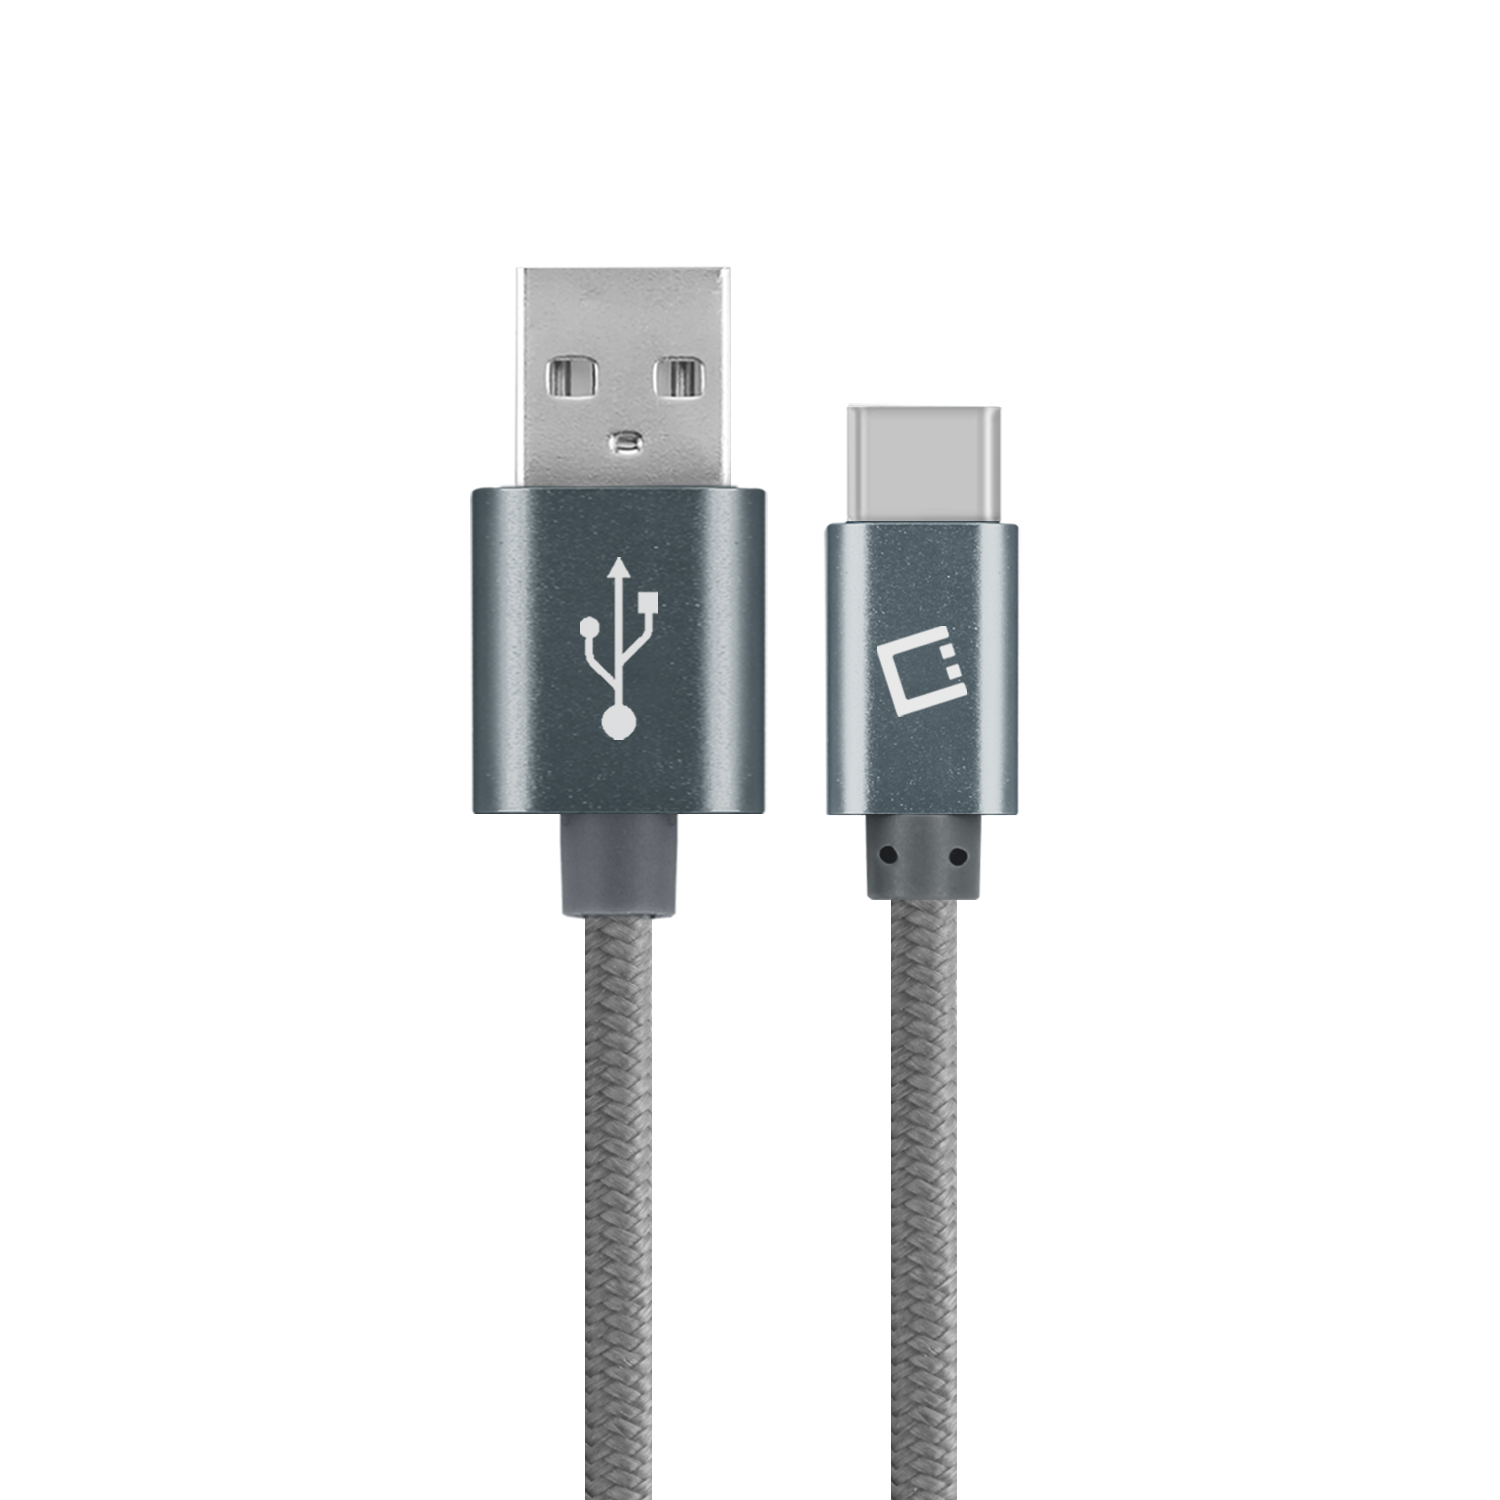 ZTE Max XL USB Type-C To Type-A Braided Data Power Cable Grey 10ft Braided